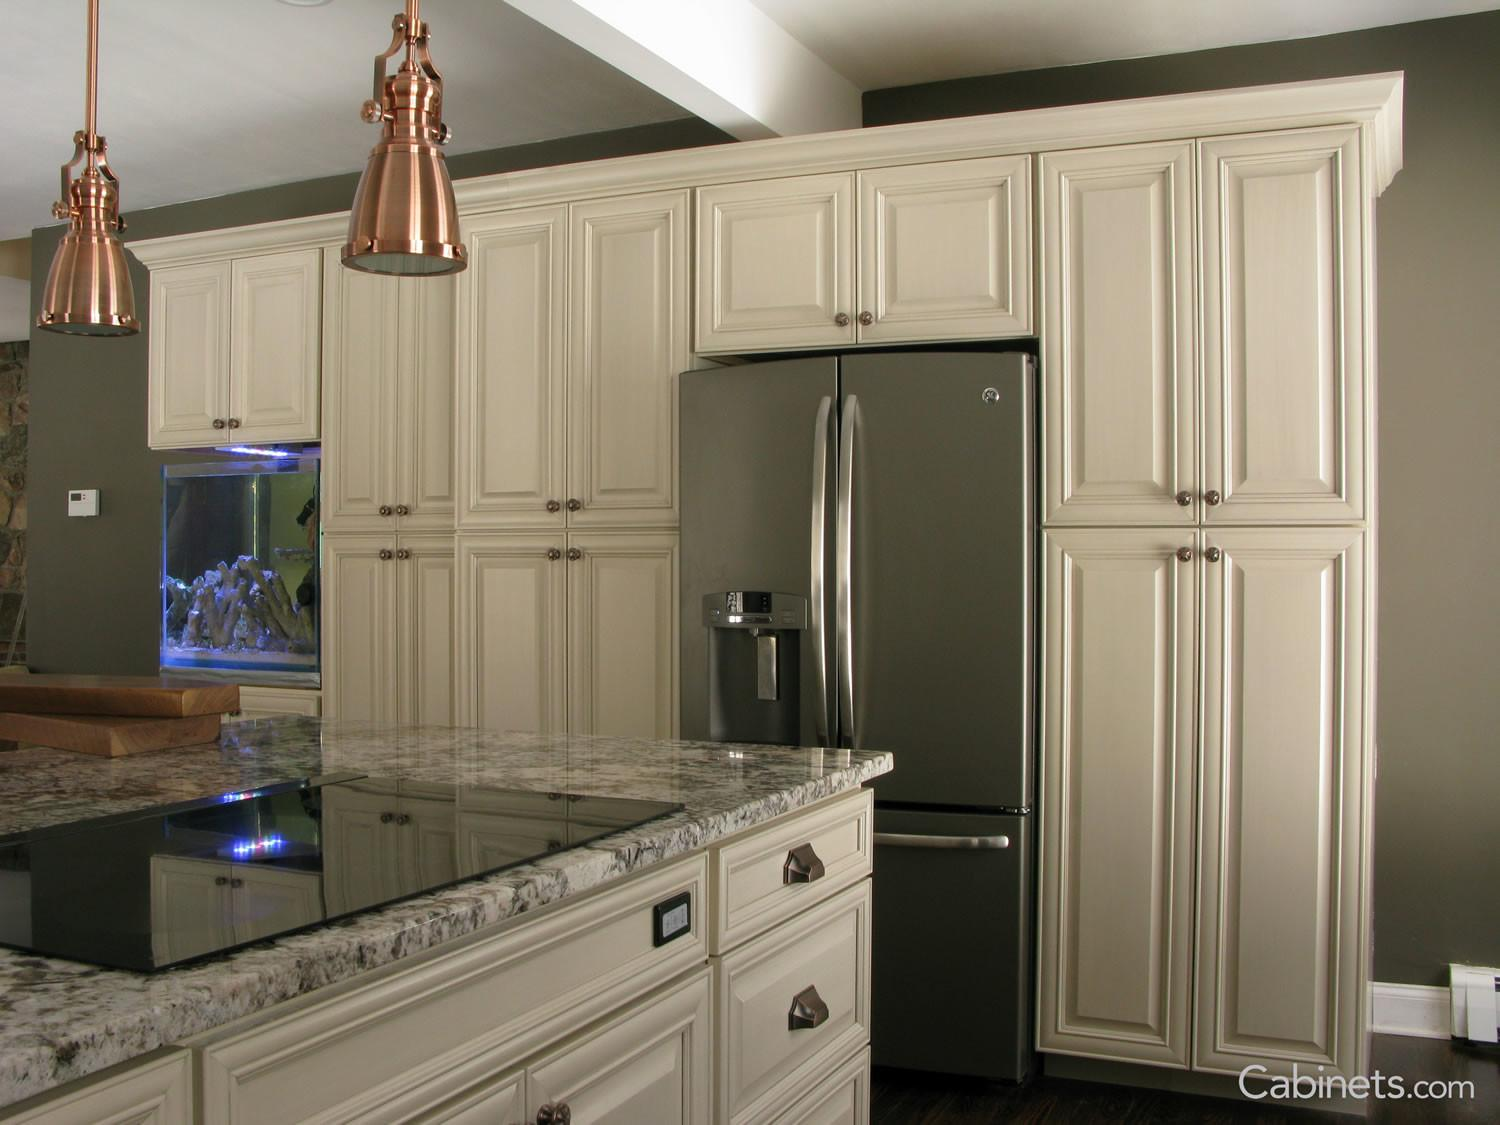 Mixing Metals Kitchen Design Tips Cabinets